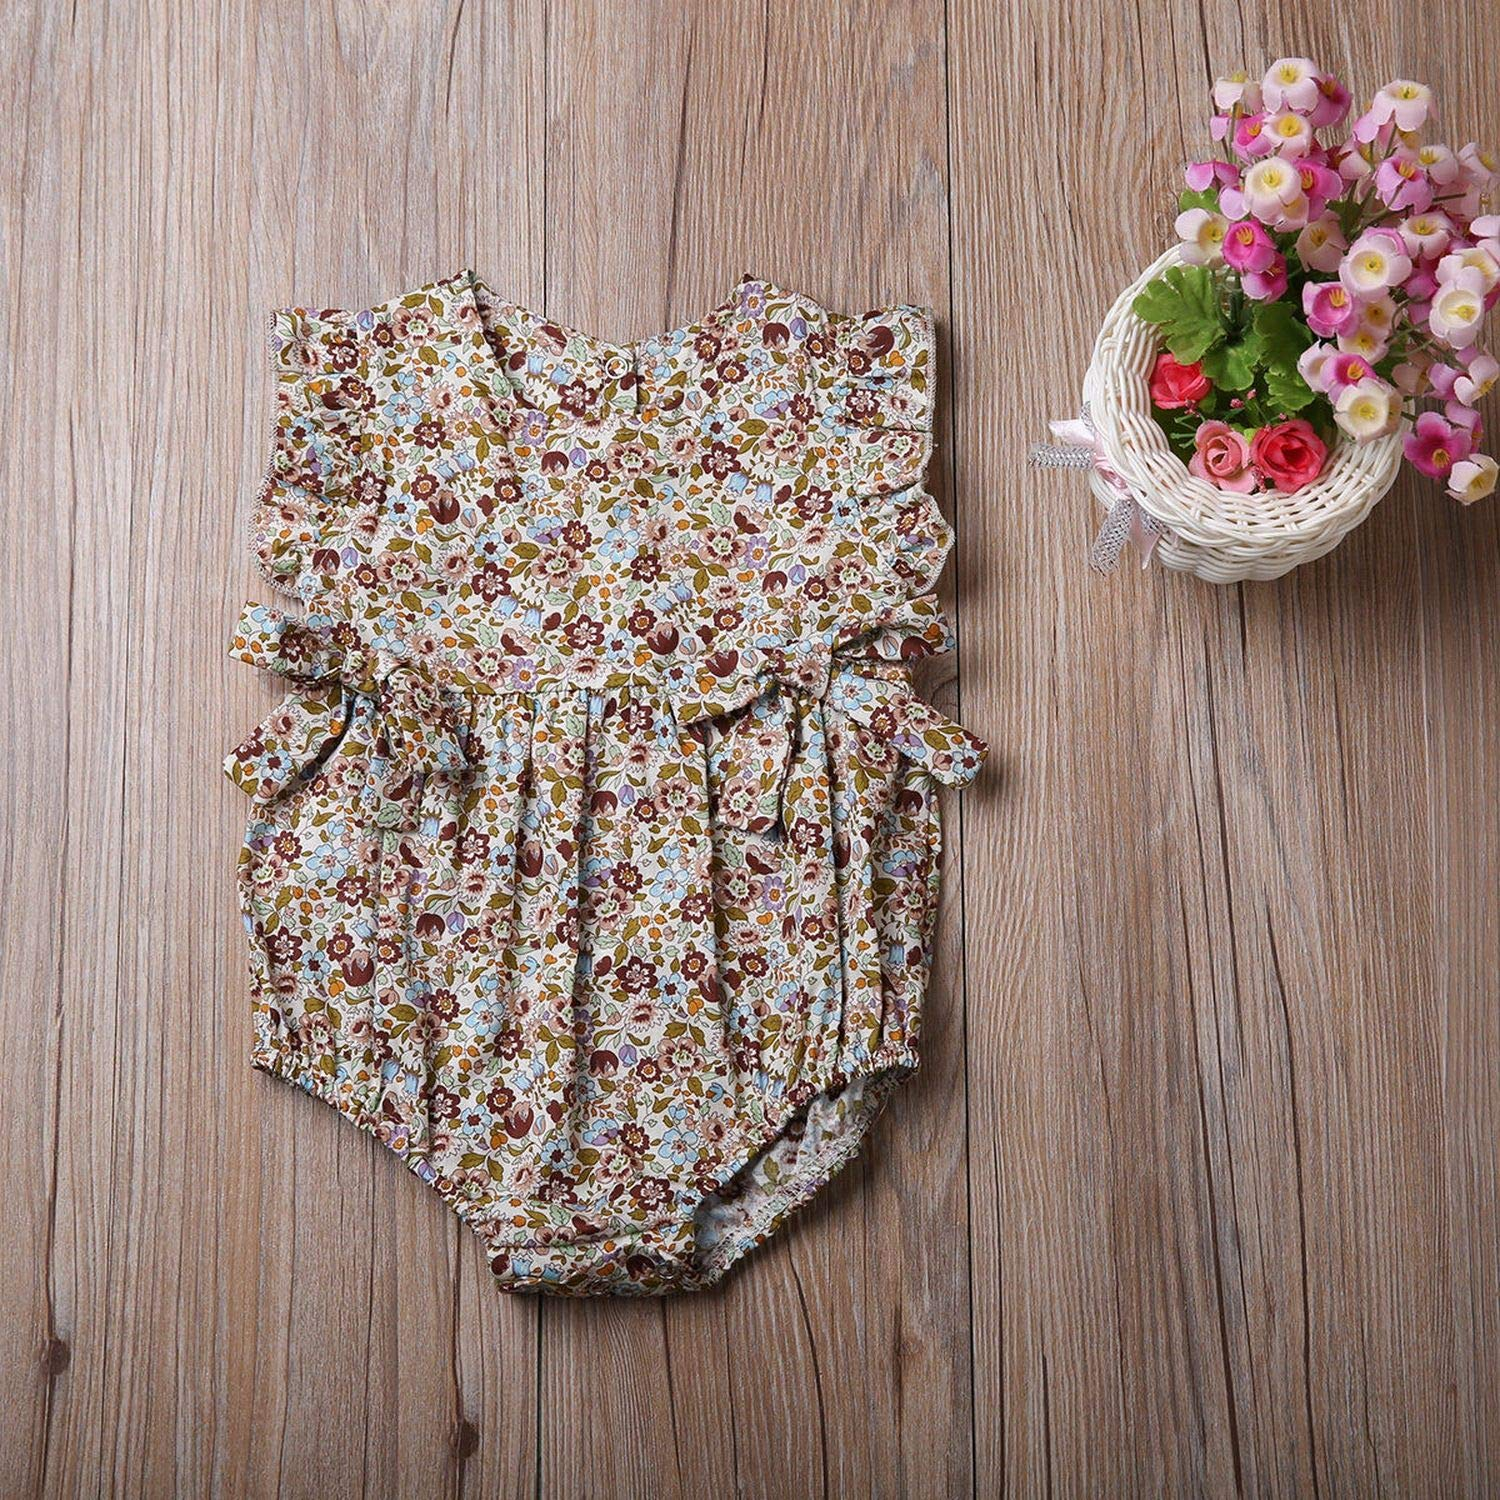 Cute Newborn Baby Girls Floral Romper Bowknot Clothes One Pieces Jumpsuit Outfit Infant Toddler Girl Sleeveless Brief Rompers